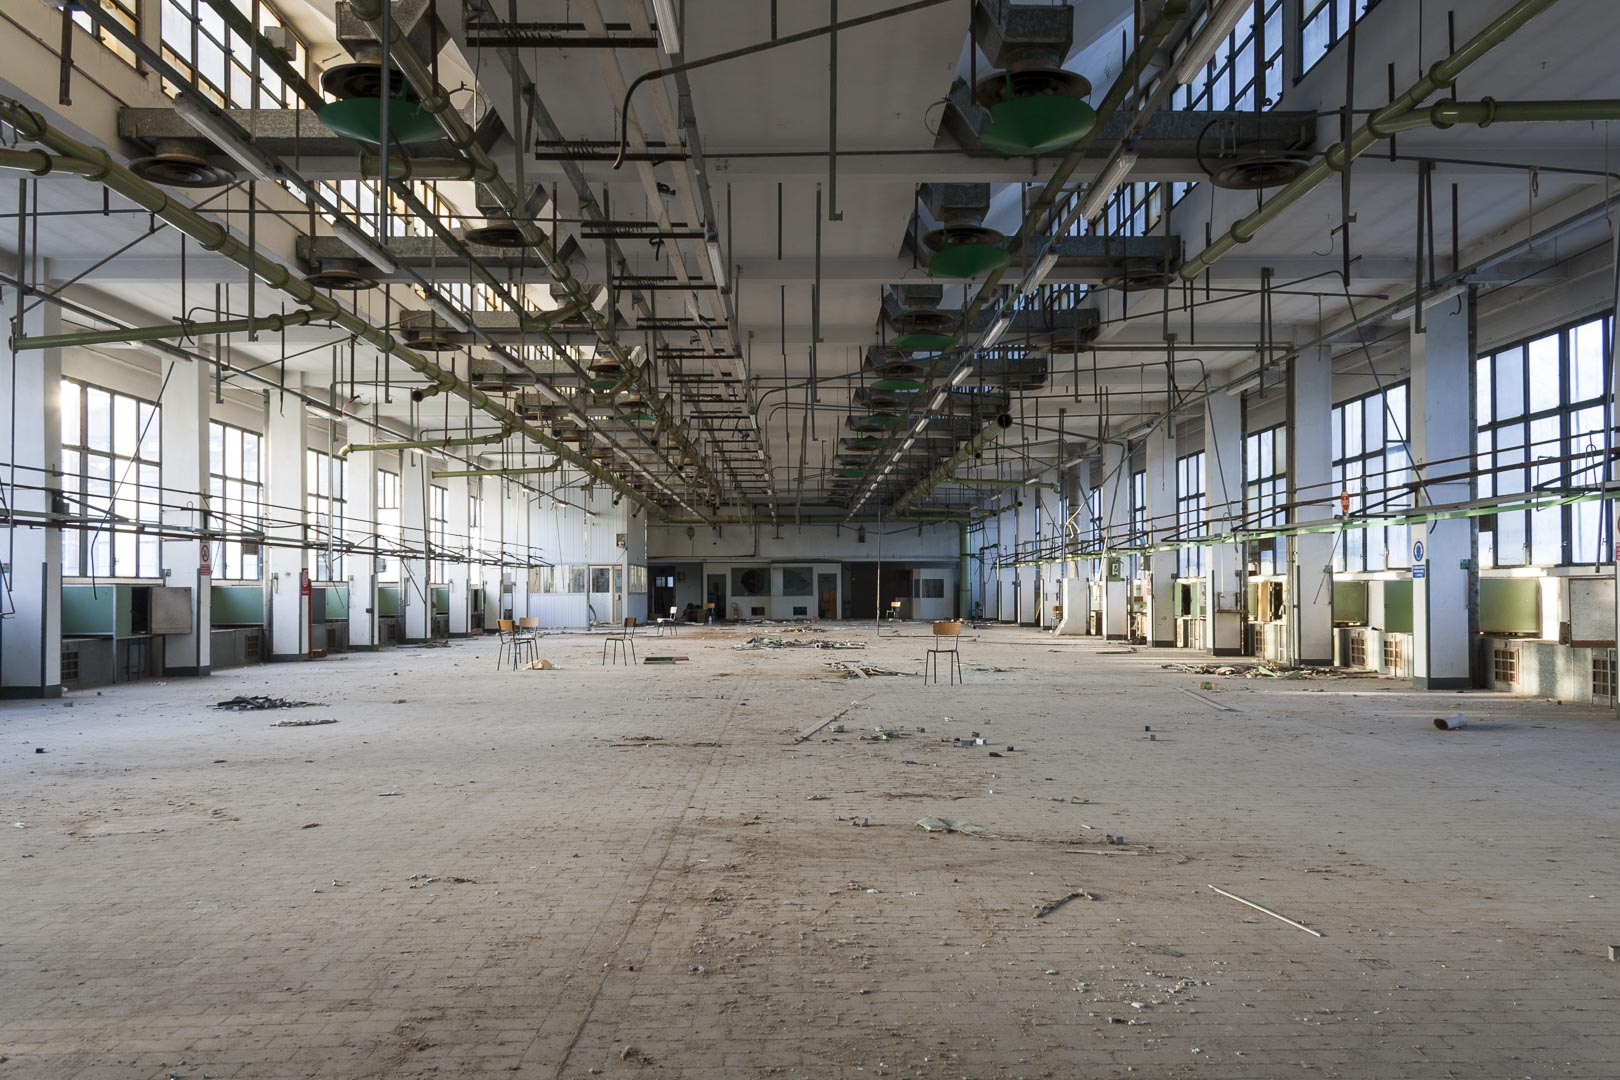 Abandoned Cigarette Factory – Turin, Italy